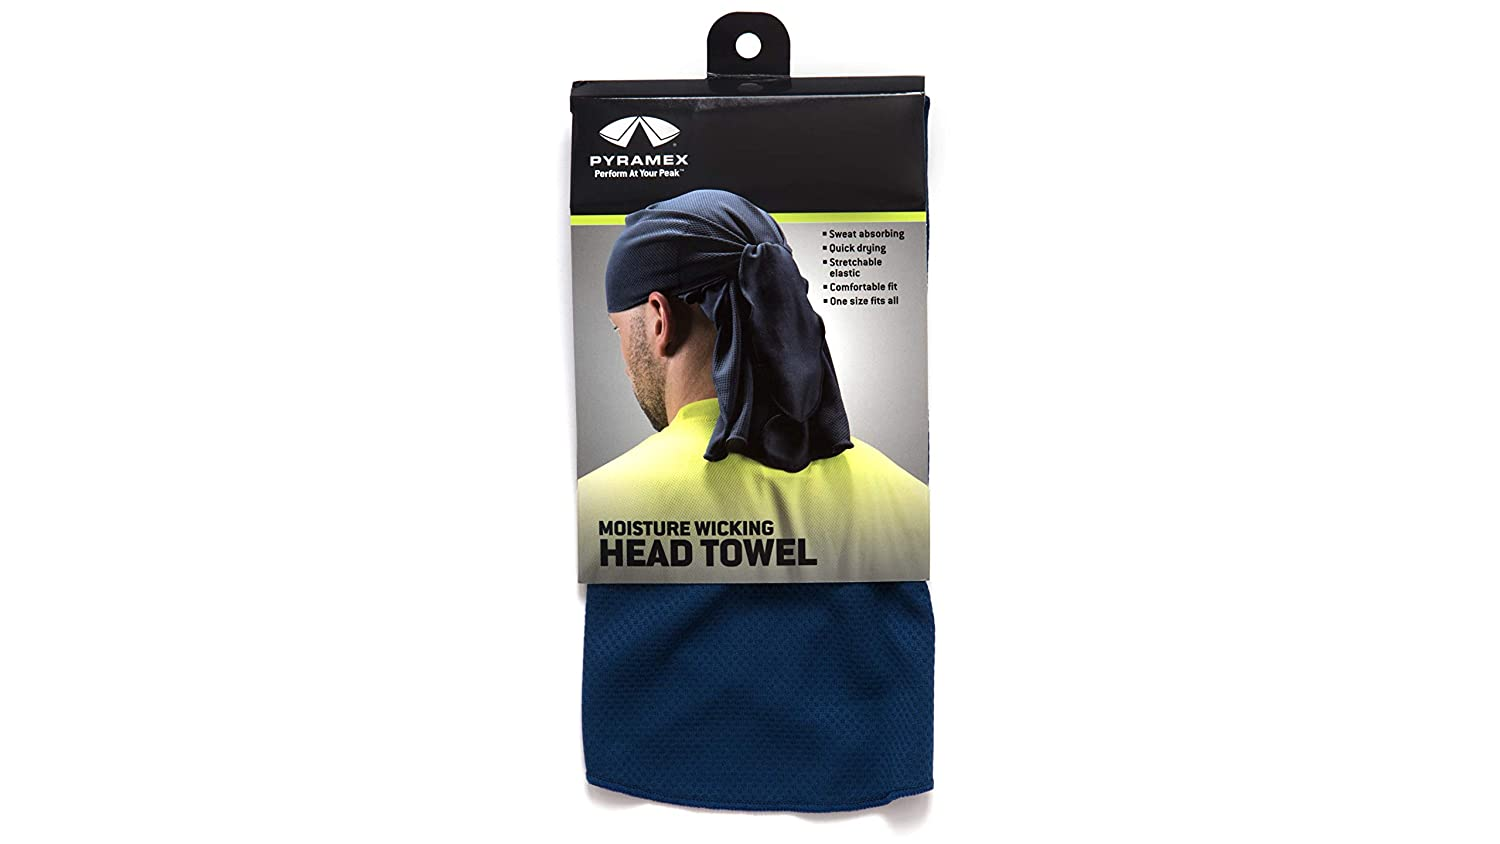 Pyramex Max 71% OFF CSKT260 Quality inspection Head towel - ties Blue with